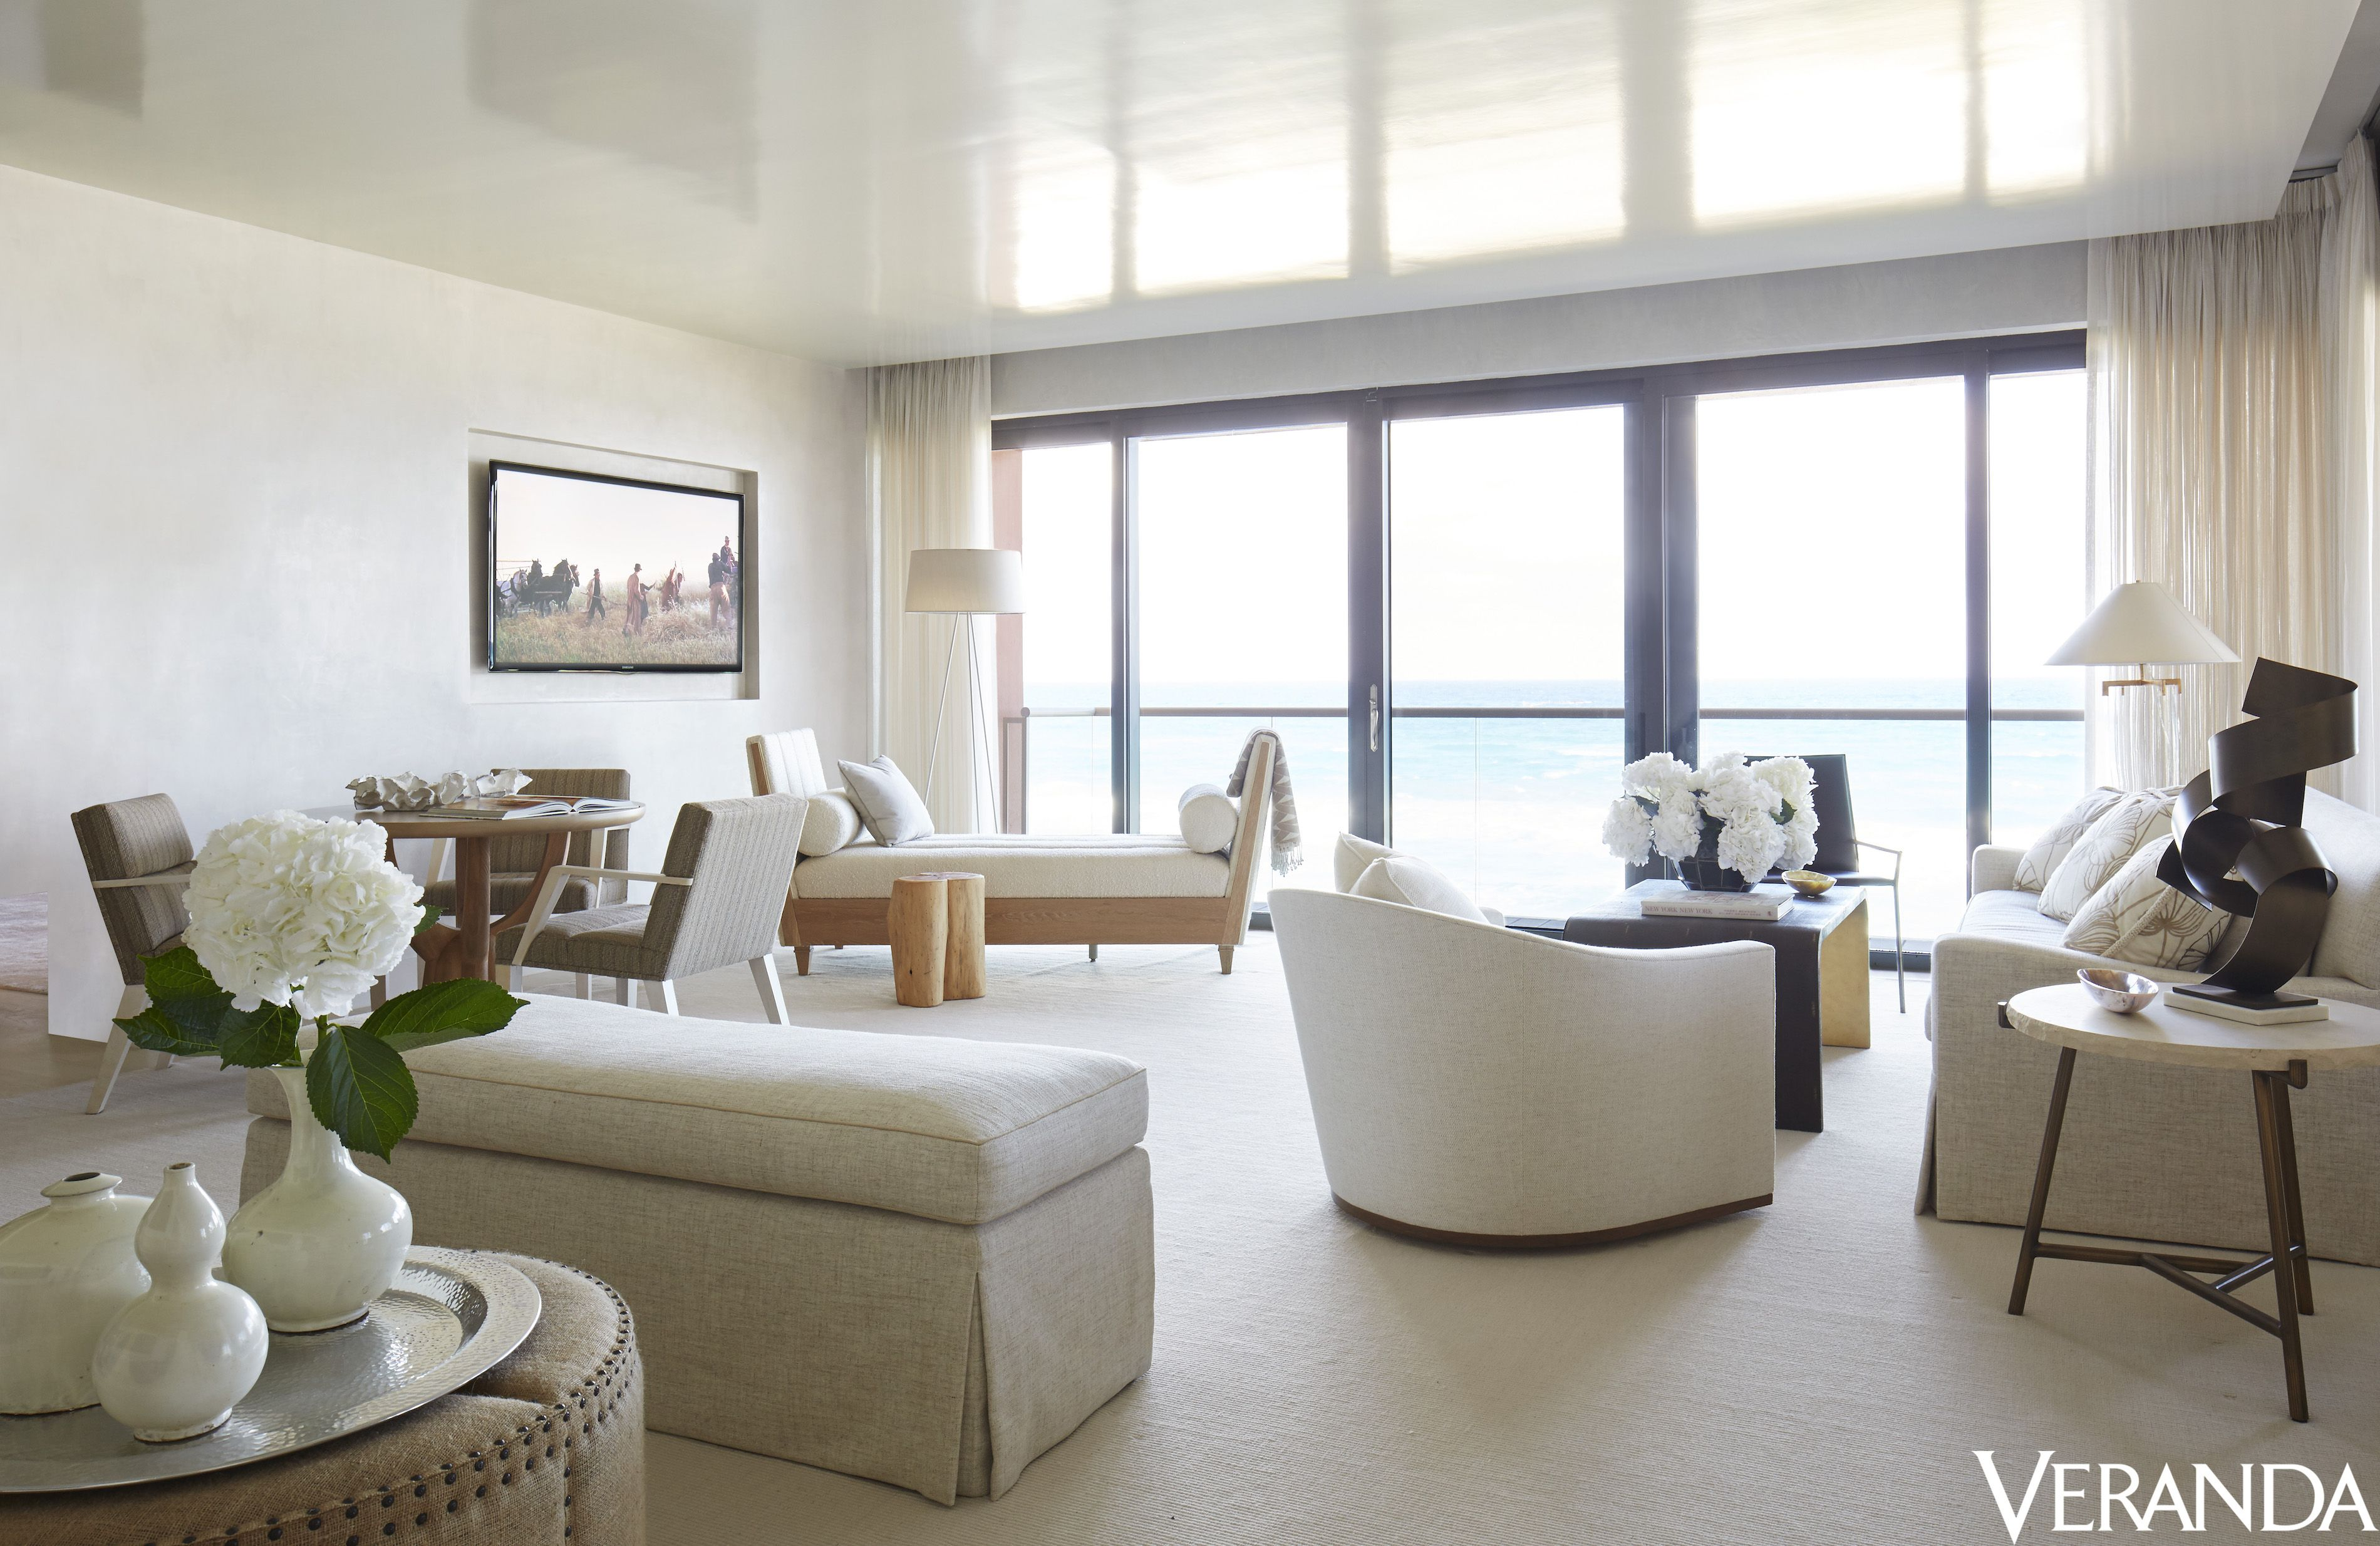 35 Best White Room Ideas  Decorating With White Furniture And